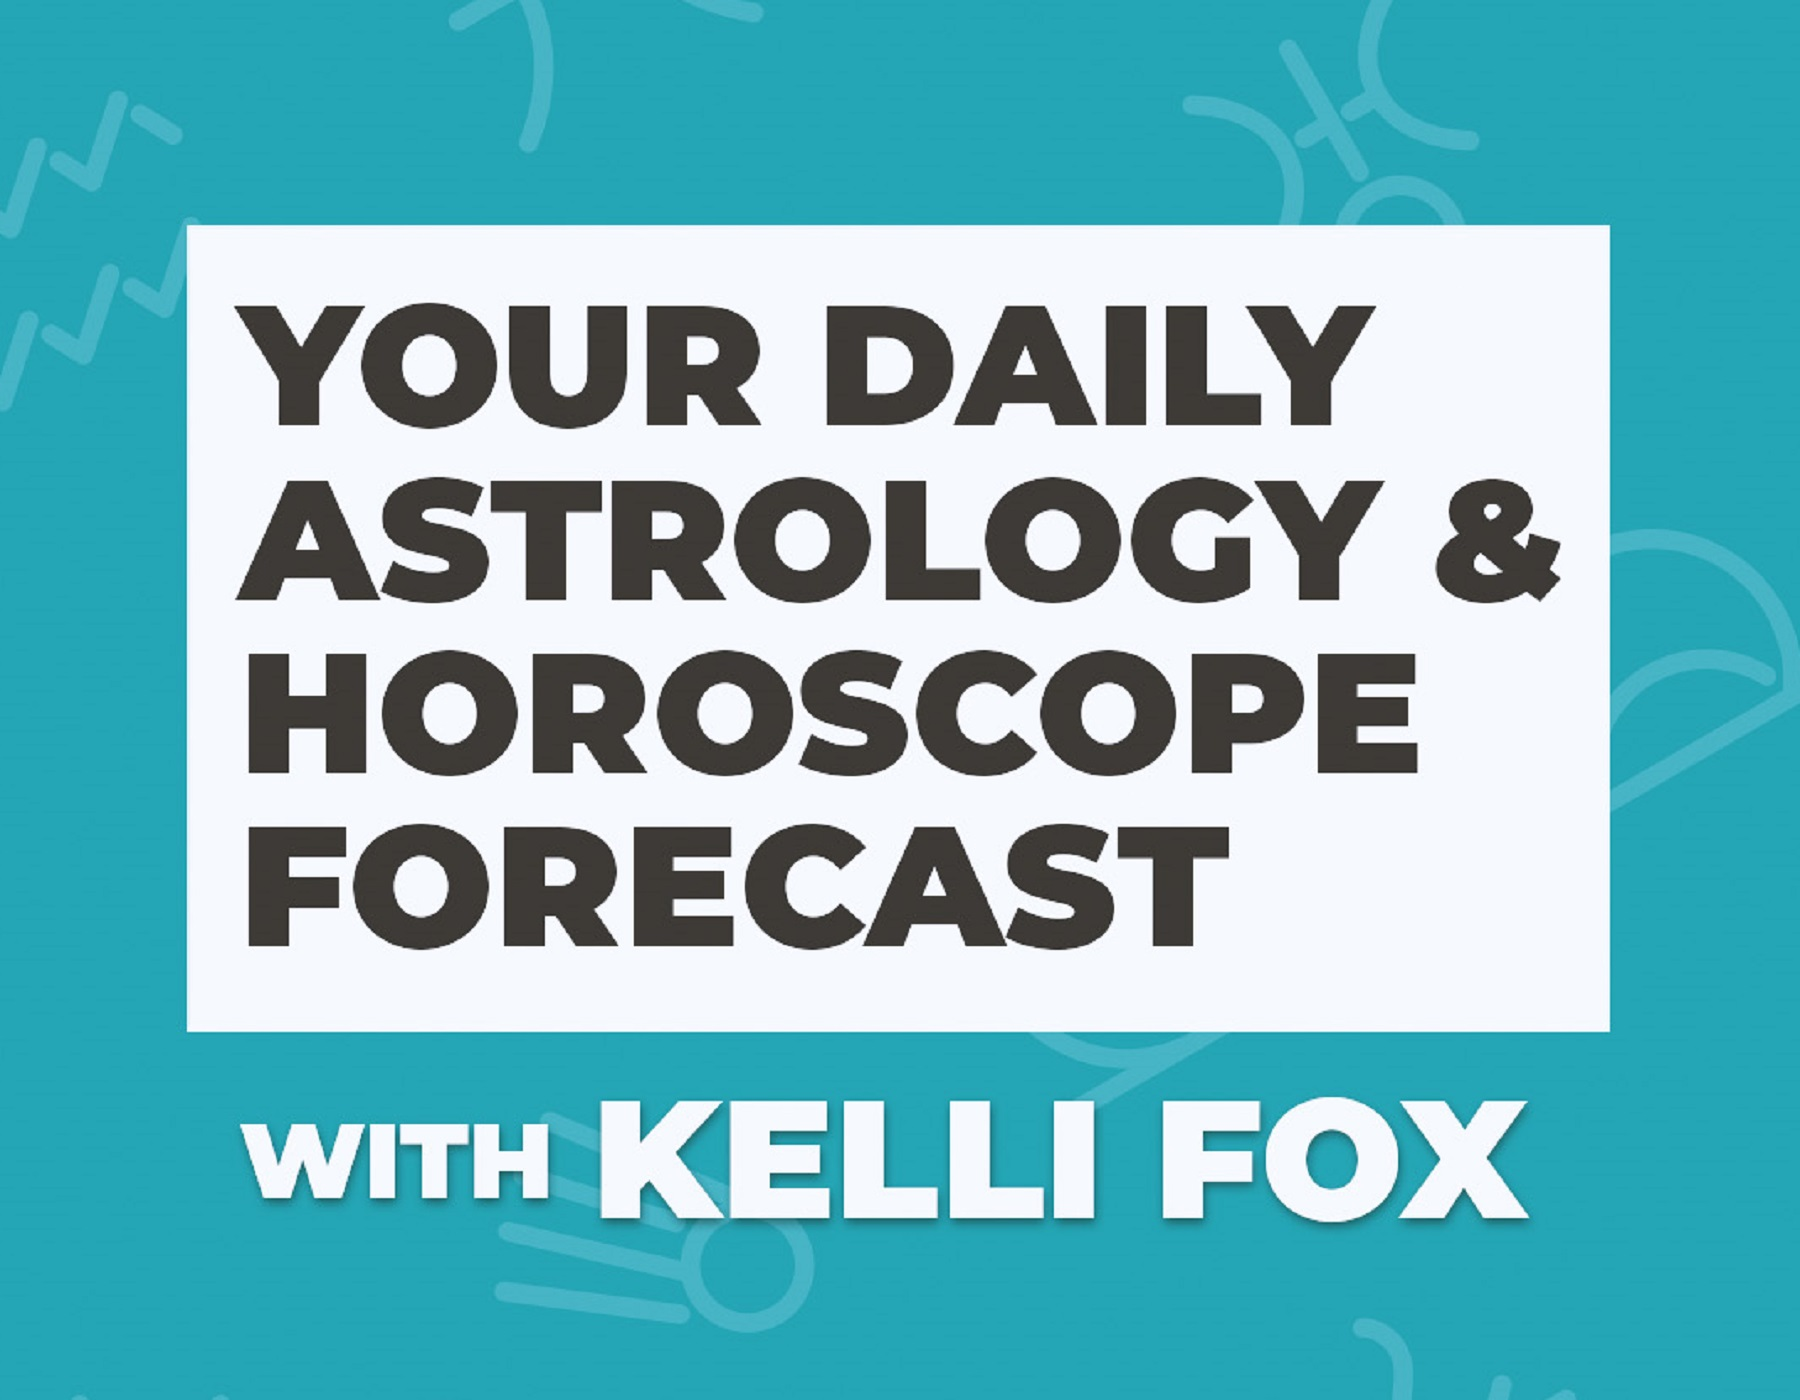 kelli fox daily sagittarius horoscope